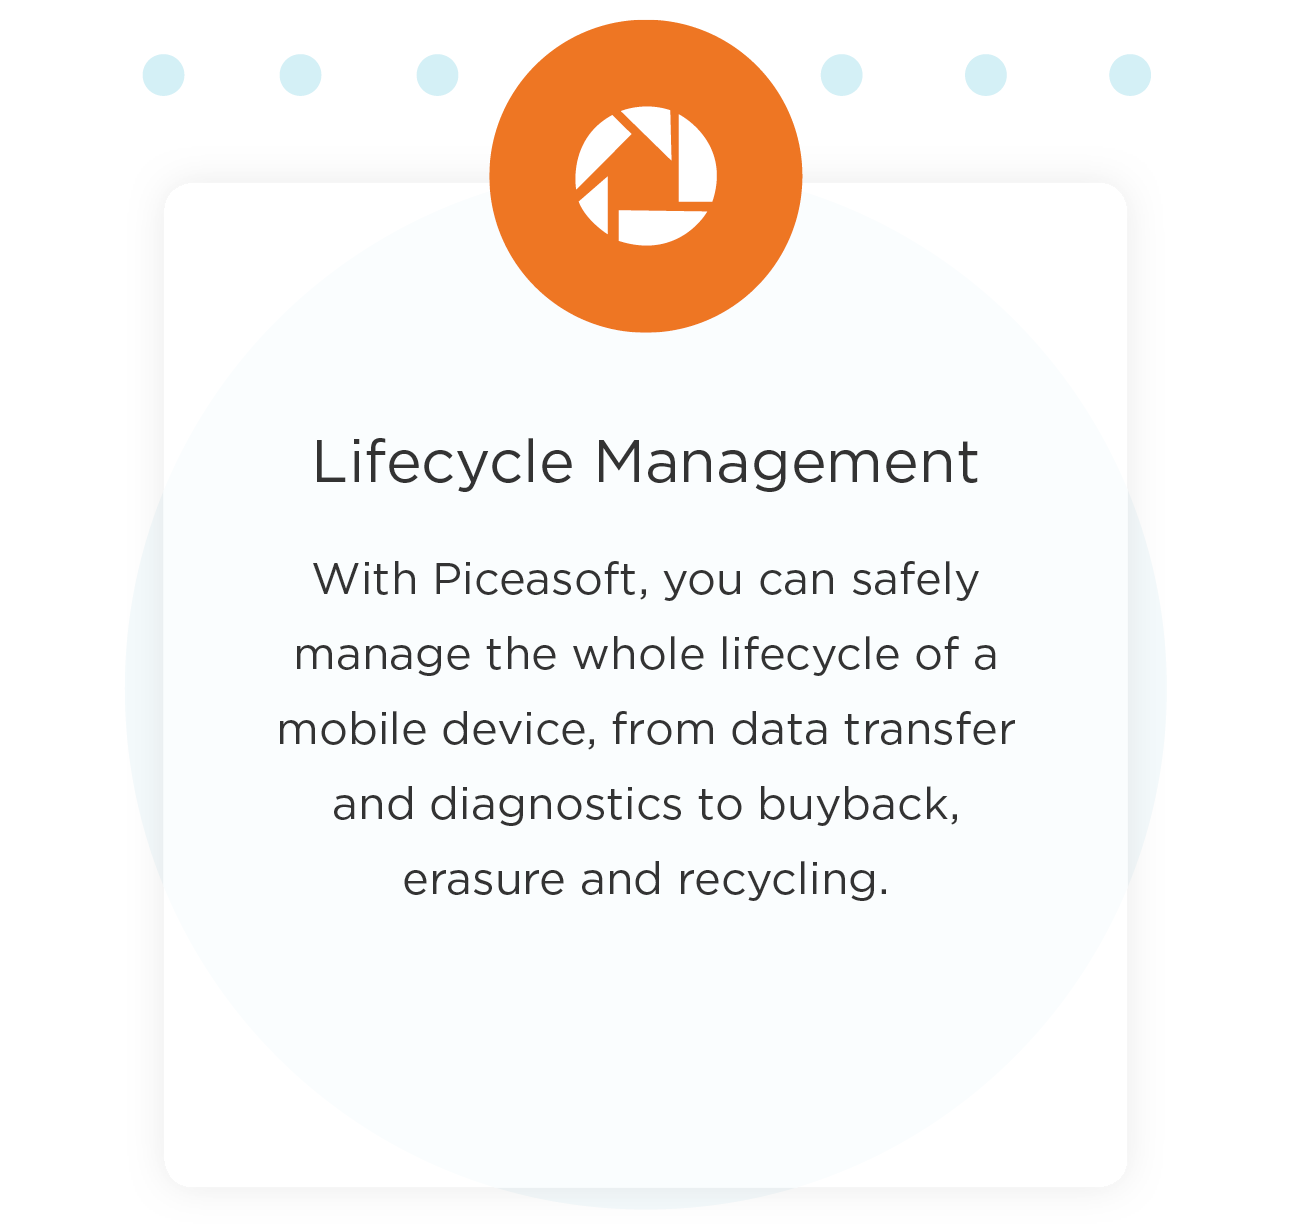 LifecycleManagement2